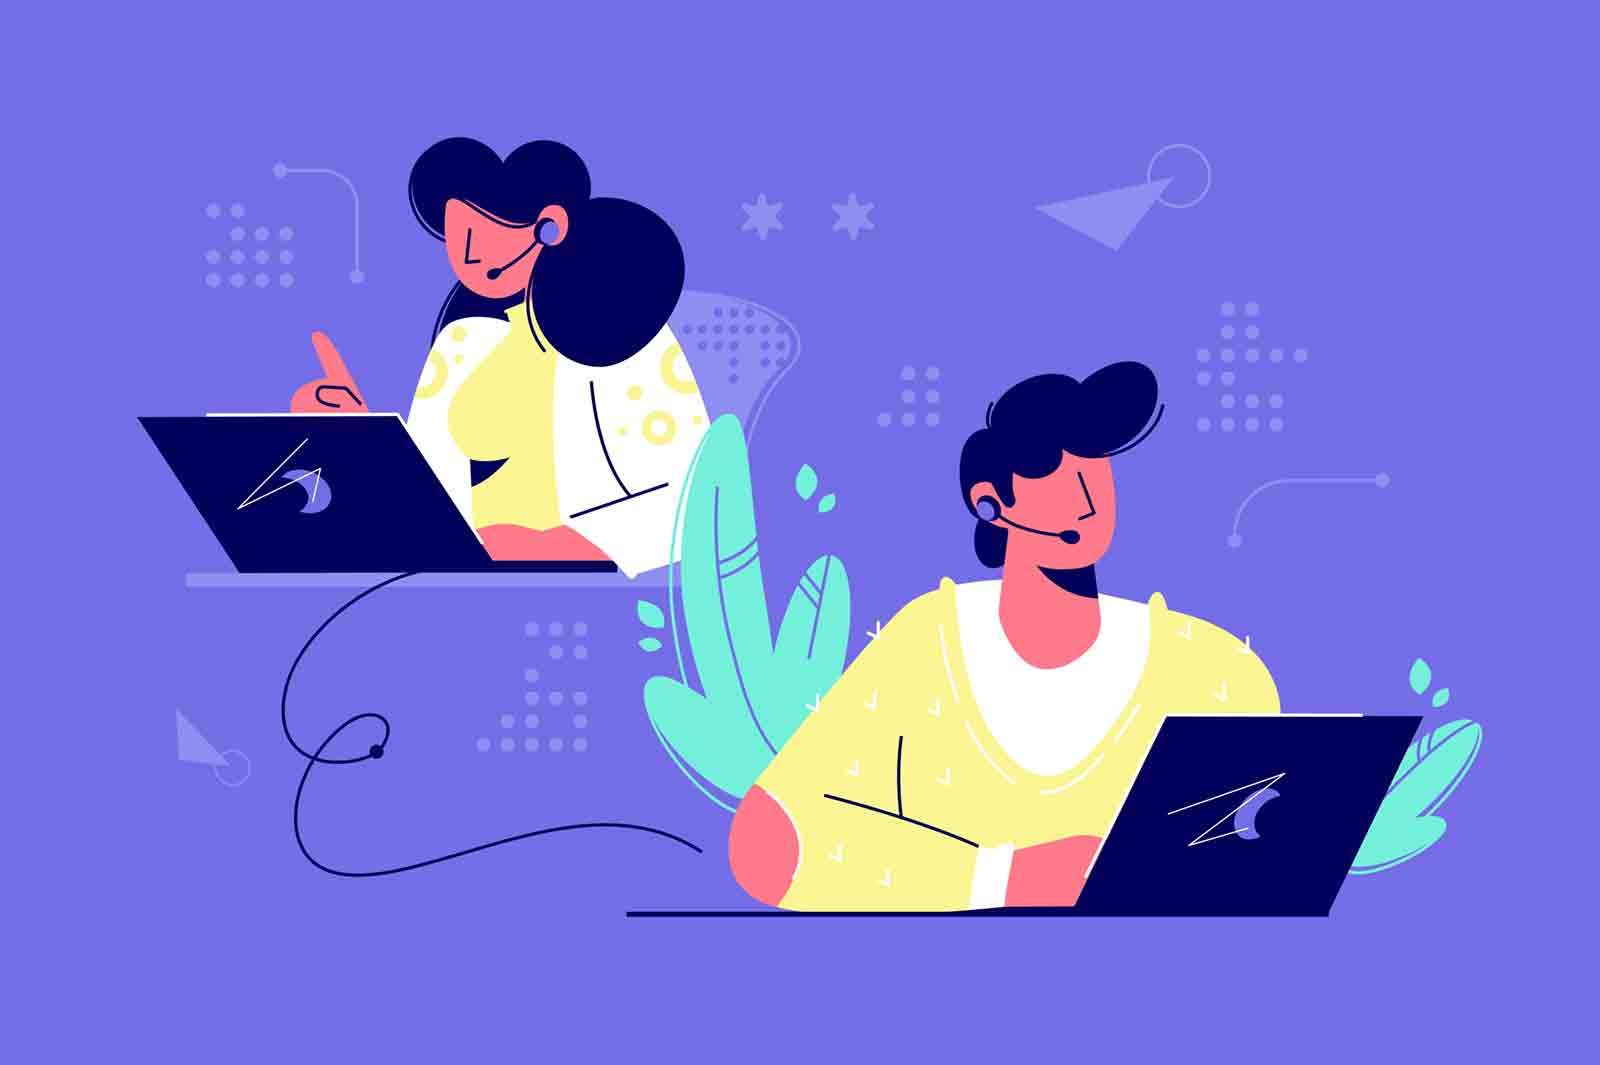 Call center assistants vector illustration. Man and woman operators in headset advising customers flat style design. Providing support service concept